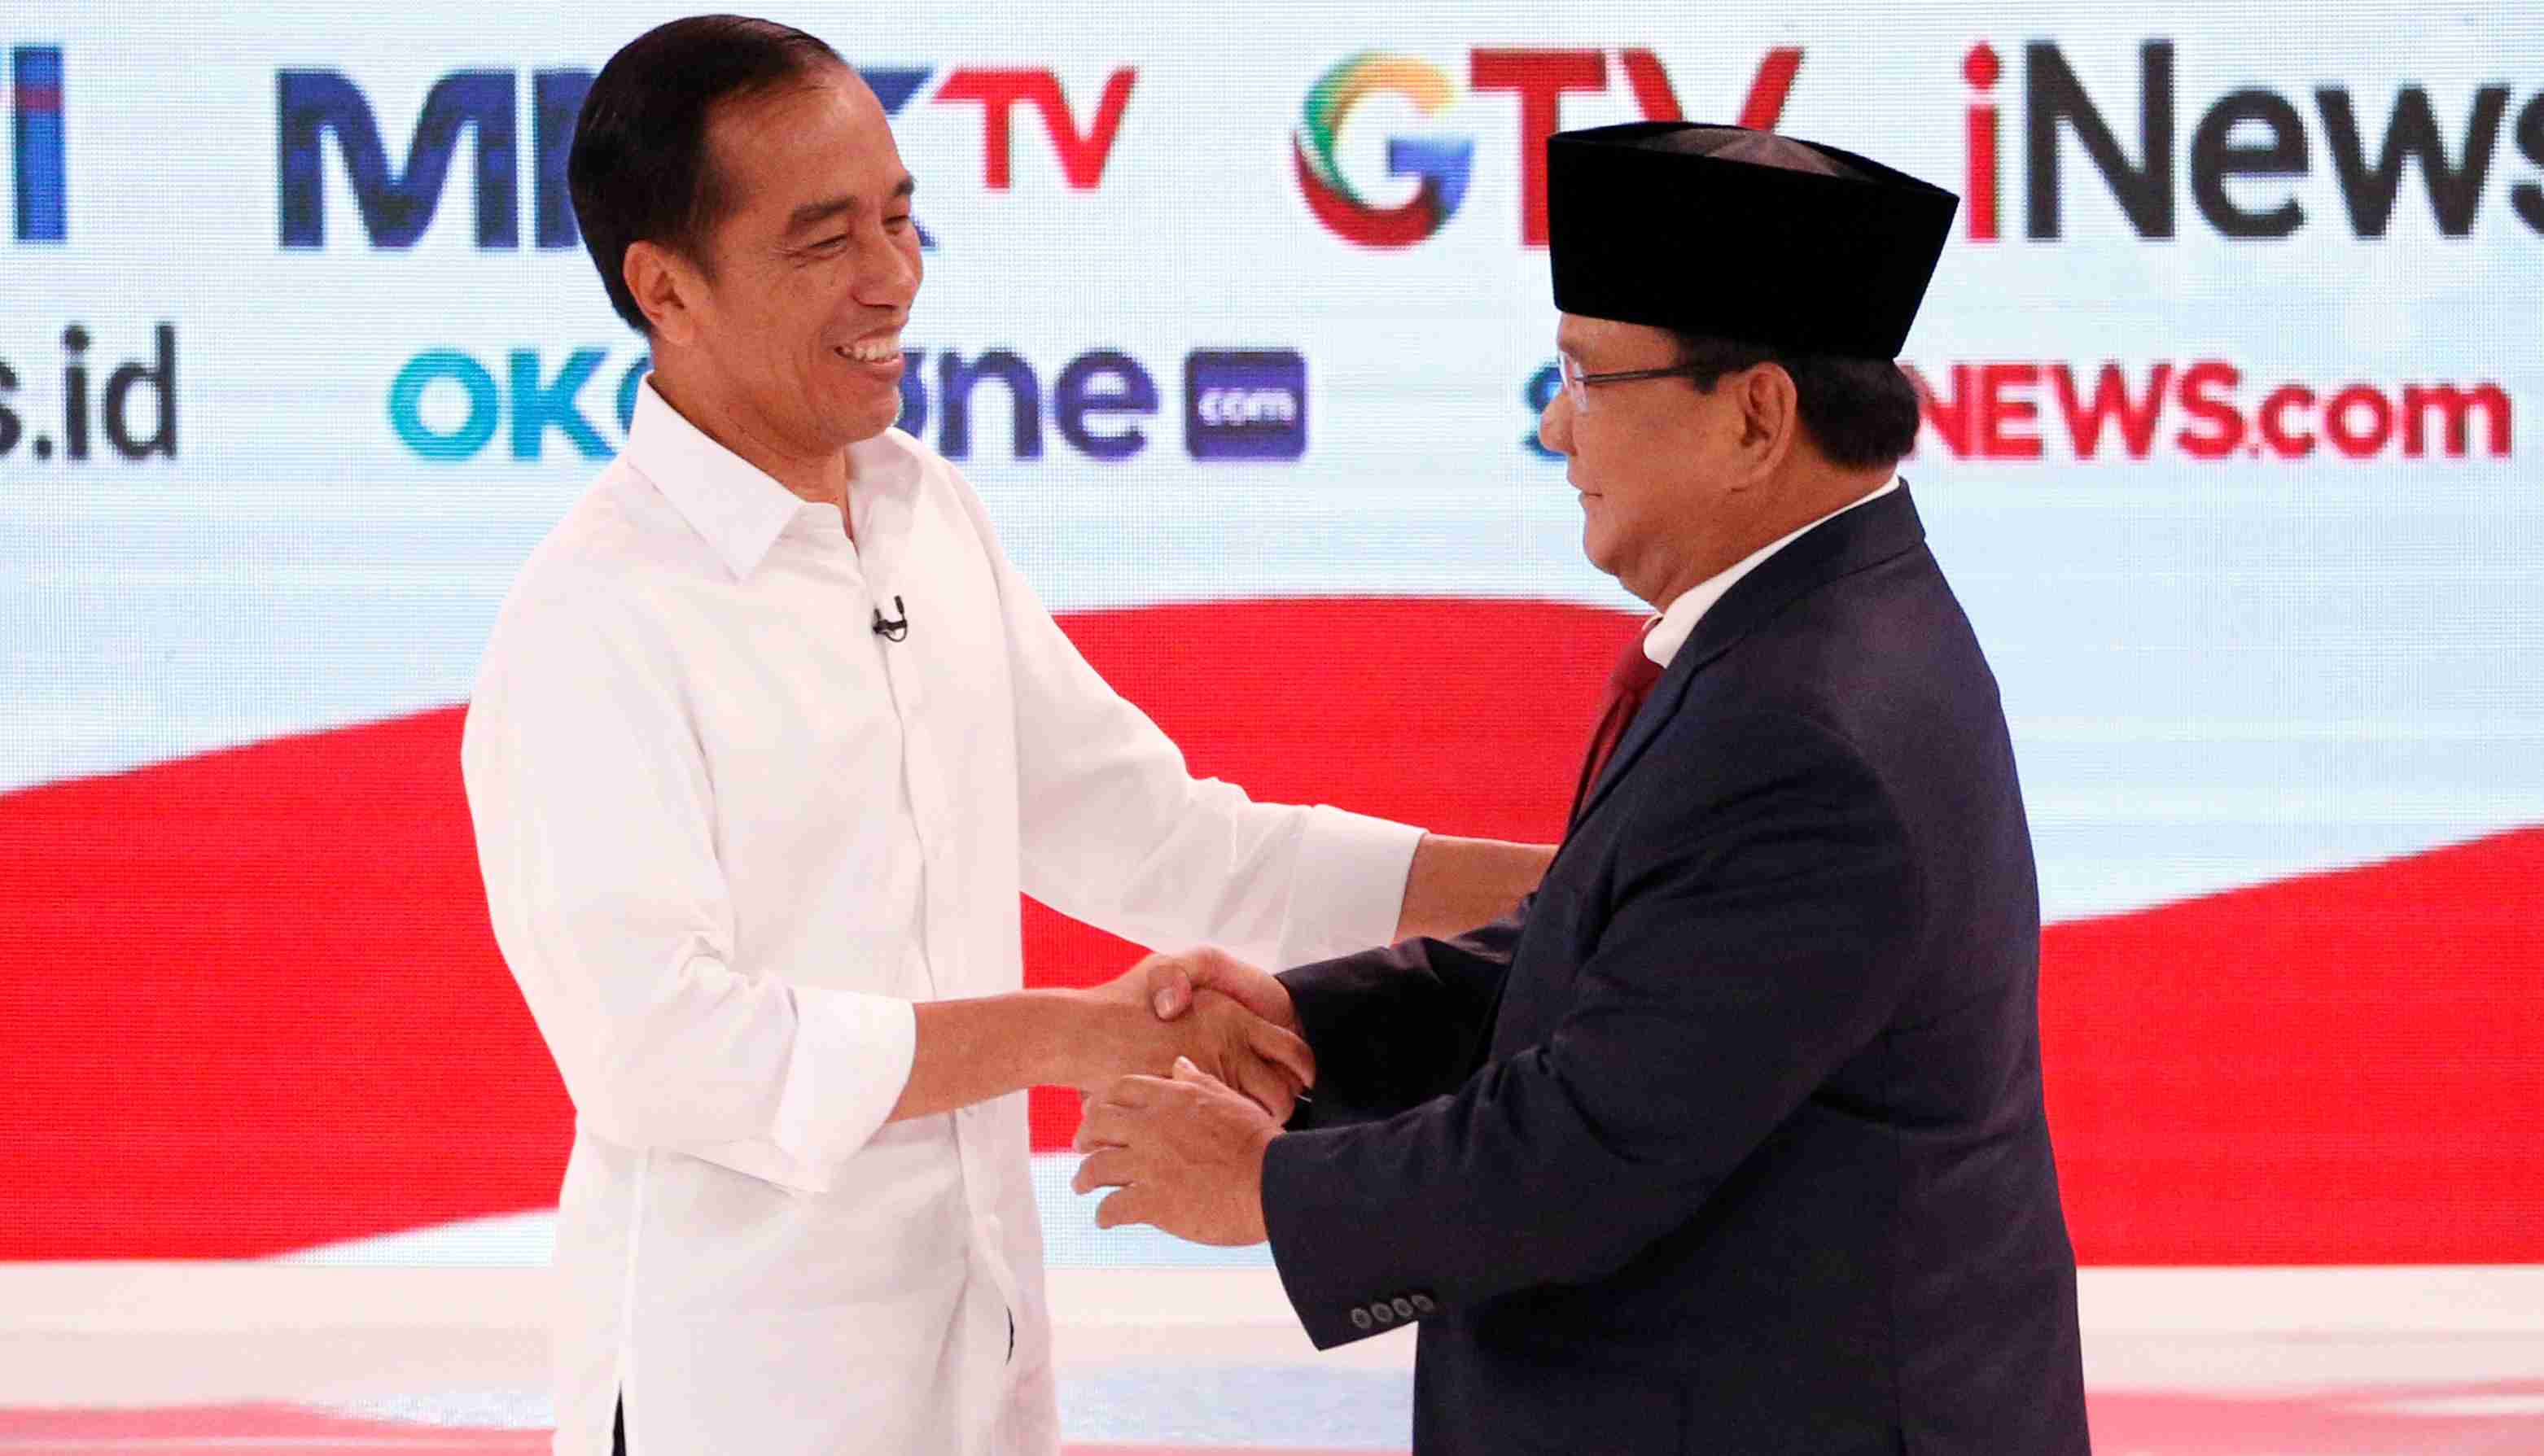 Indonesia's presidential candidate Joko Widodo (L) shakes hands with his opponent Prabowo Subianto after the second debate between presidential candidates ahead of the next general election in Jakarta, Indonesia, February 17, 2019. REUTERS/Willy Kurniawan - RC1B58C98B50